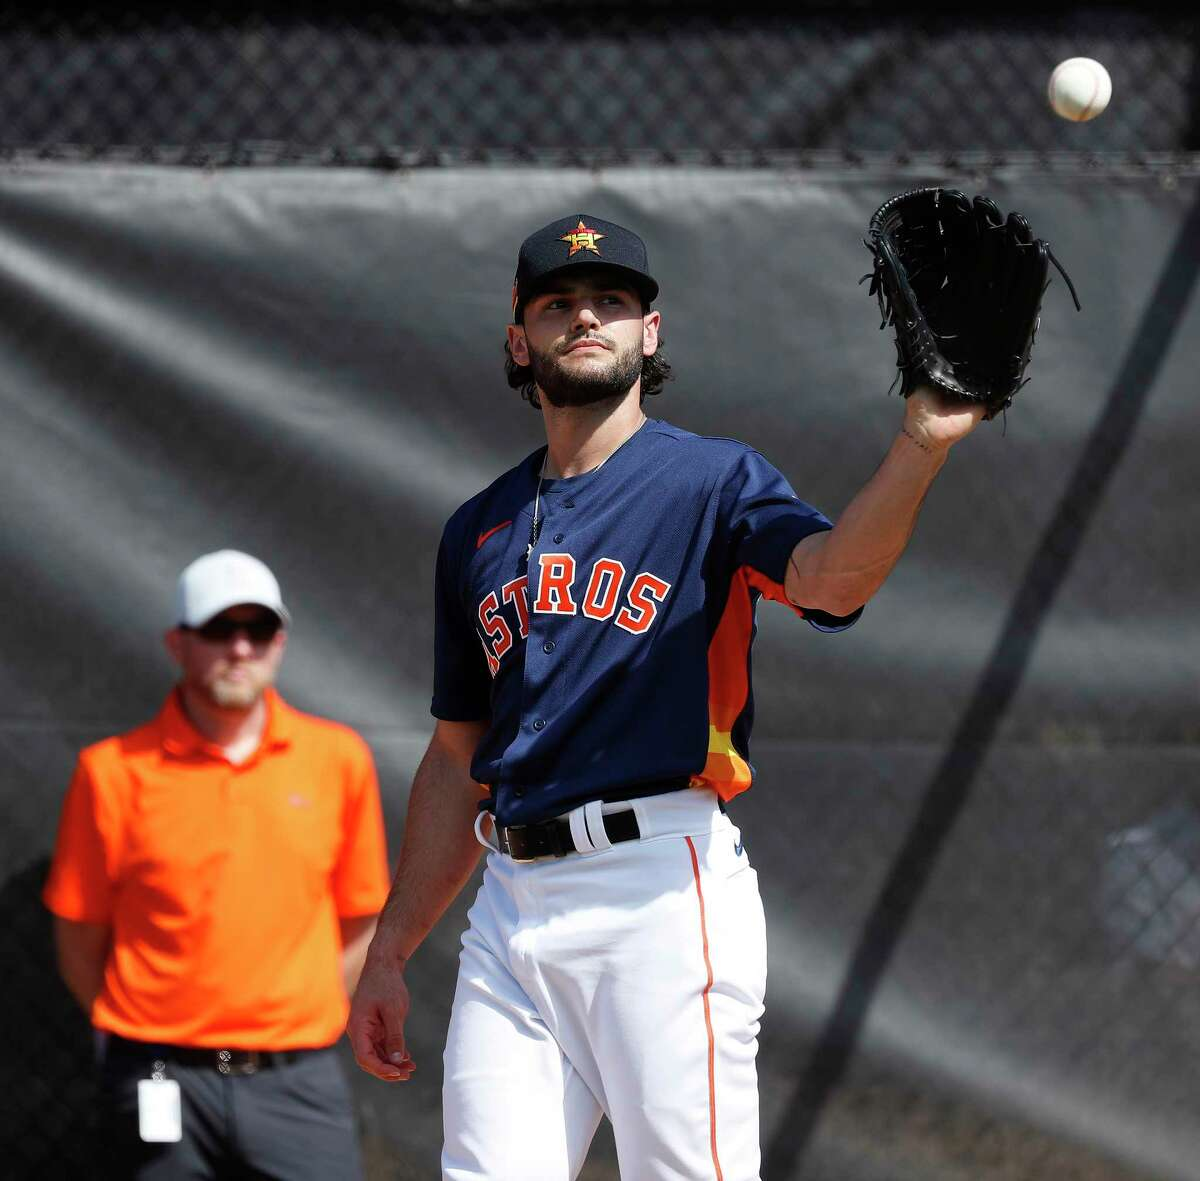 Houston Astros pitcher Lance McCullers Jr. (43) throws for the first time during the second day of the Astros spring training workouts at the Fitteam Ballpark of The Palm Beaches, in West Palm Beach , Friday, Feb. 14, 2020. McCullers Jr. is coming back from Tommy John surgery which kept him from playing during the 2019 season.